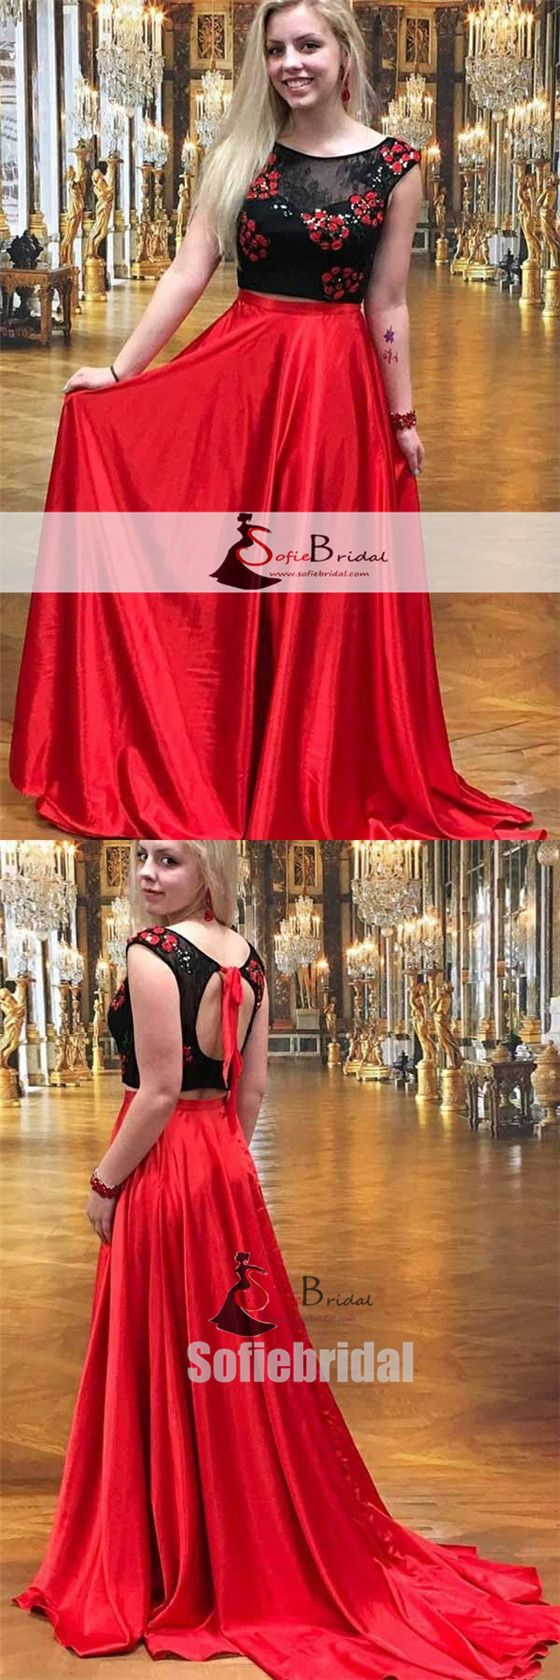 best prom dresses images on pinterest gown party wear dresses